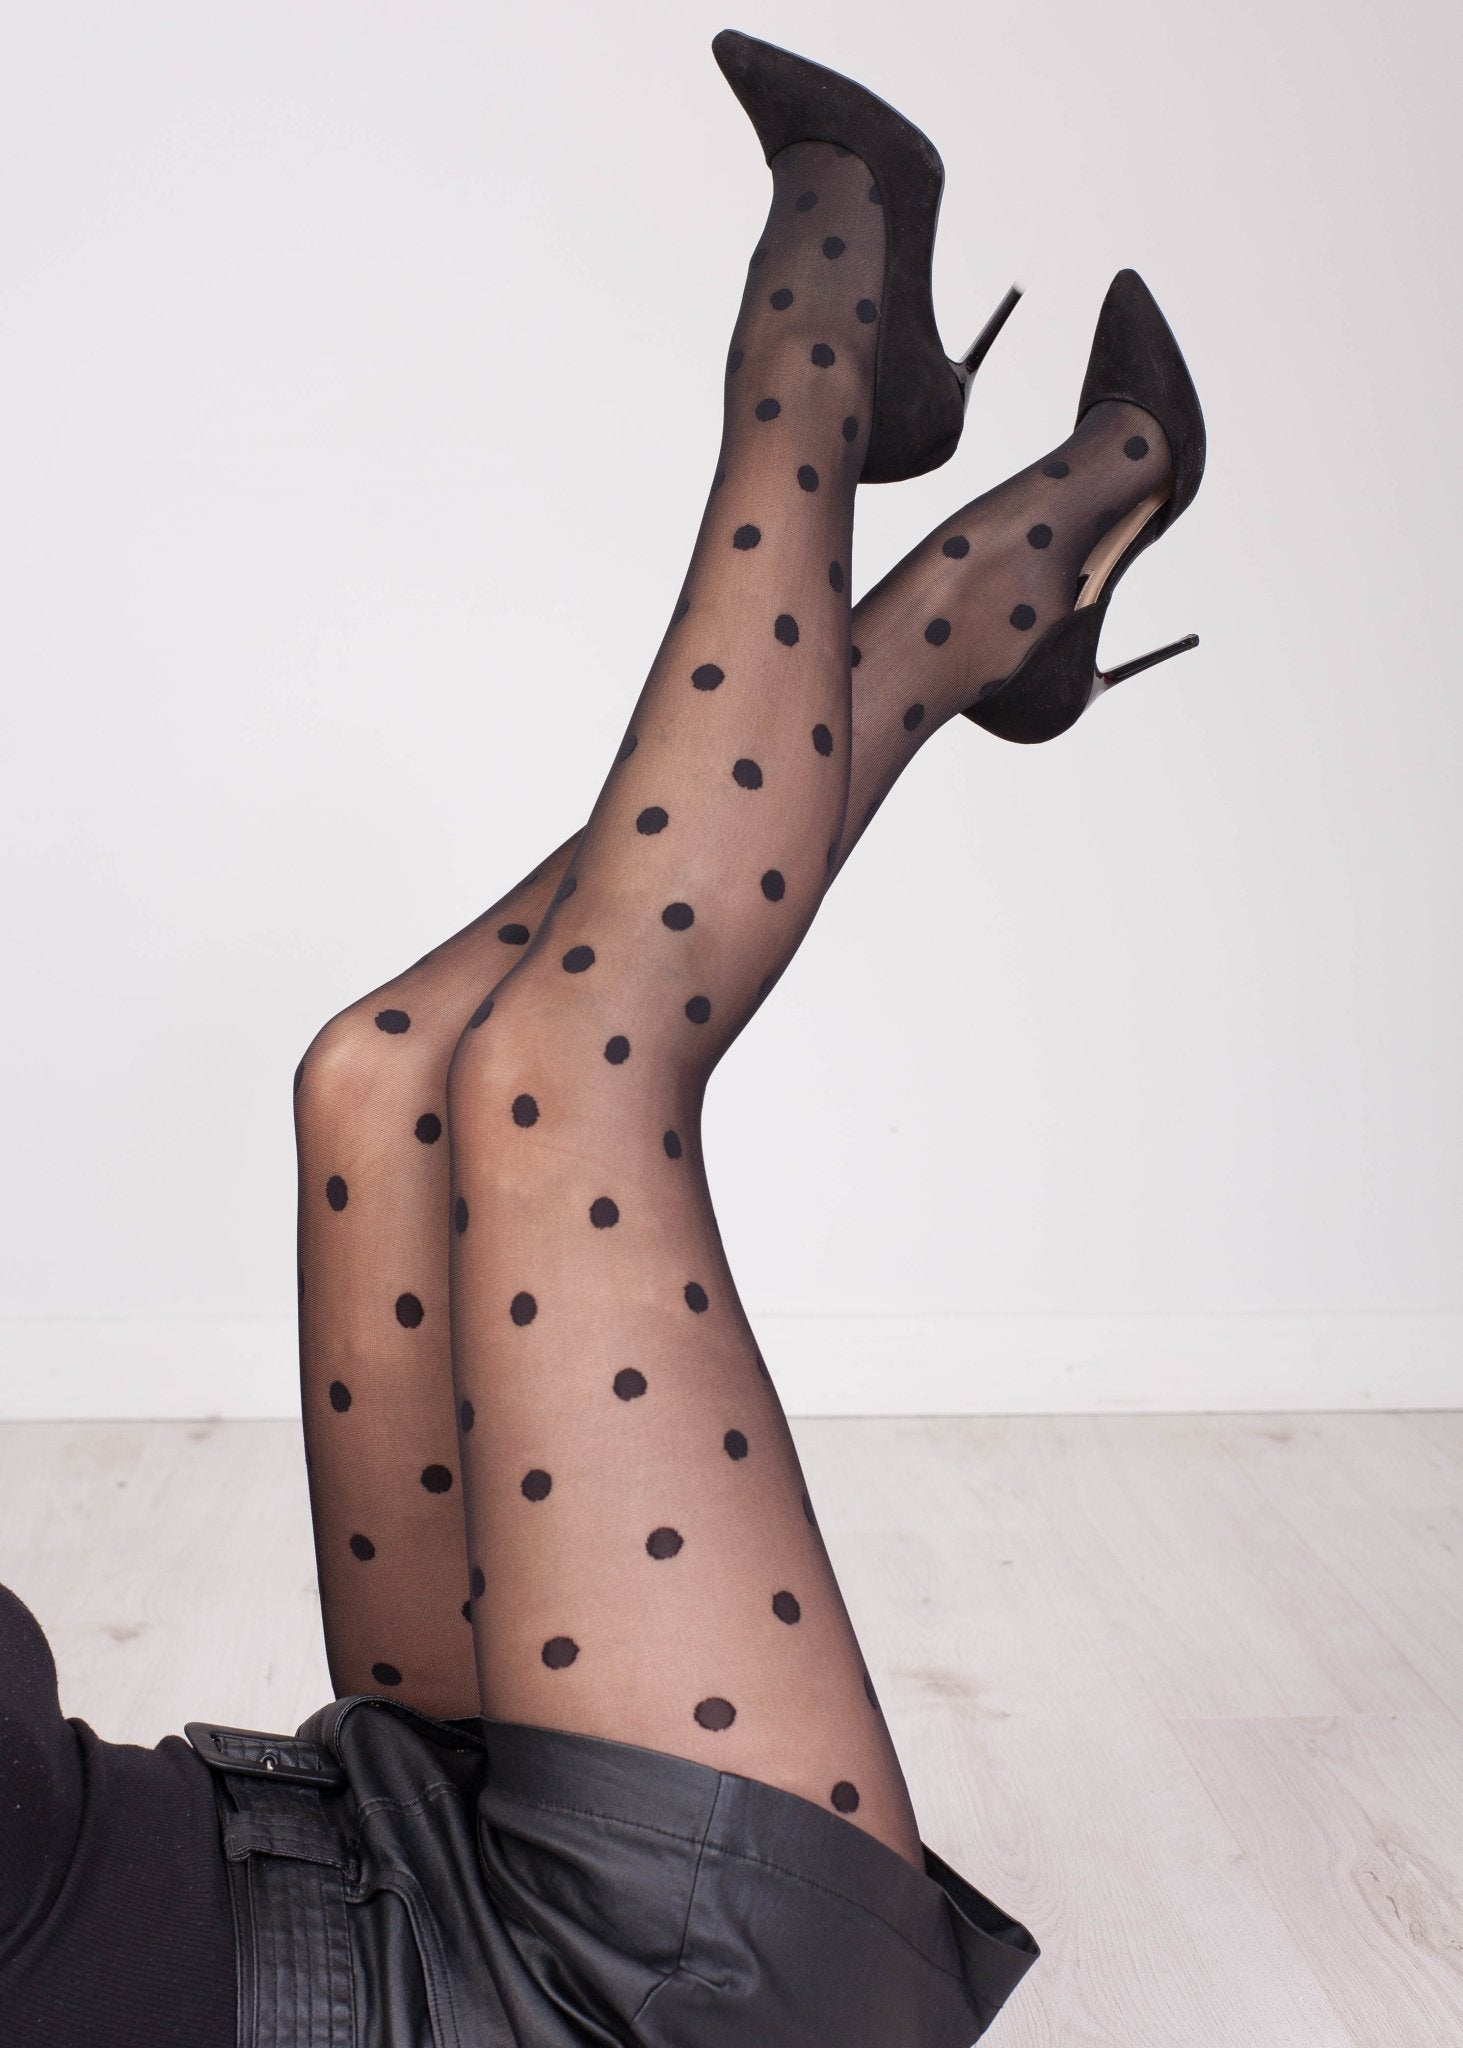 Priya Big Polka Dot Tights - The Walk in Wardrobe